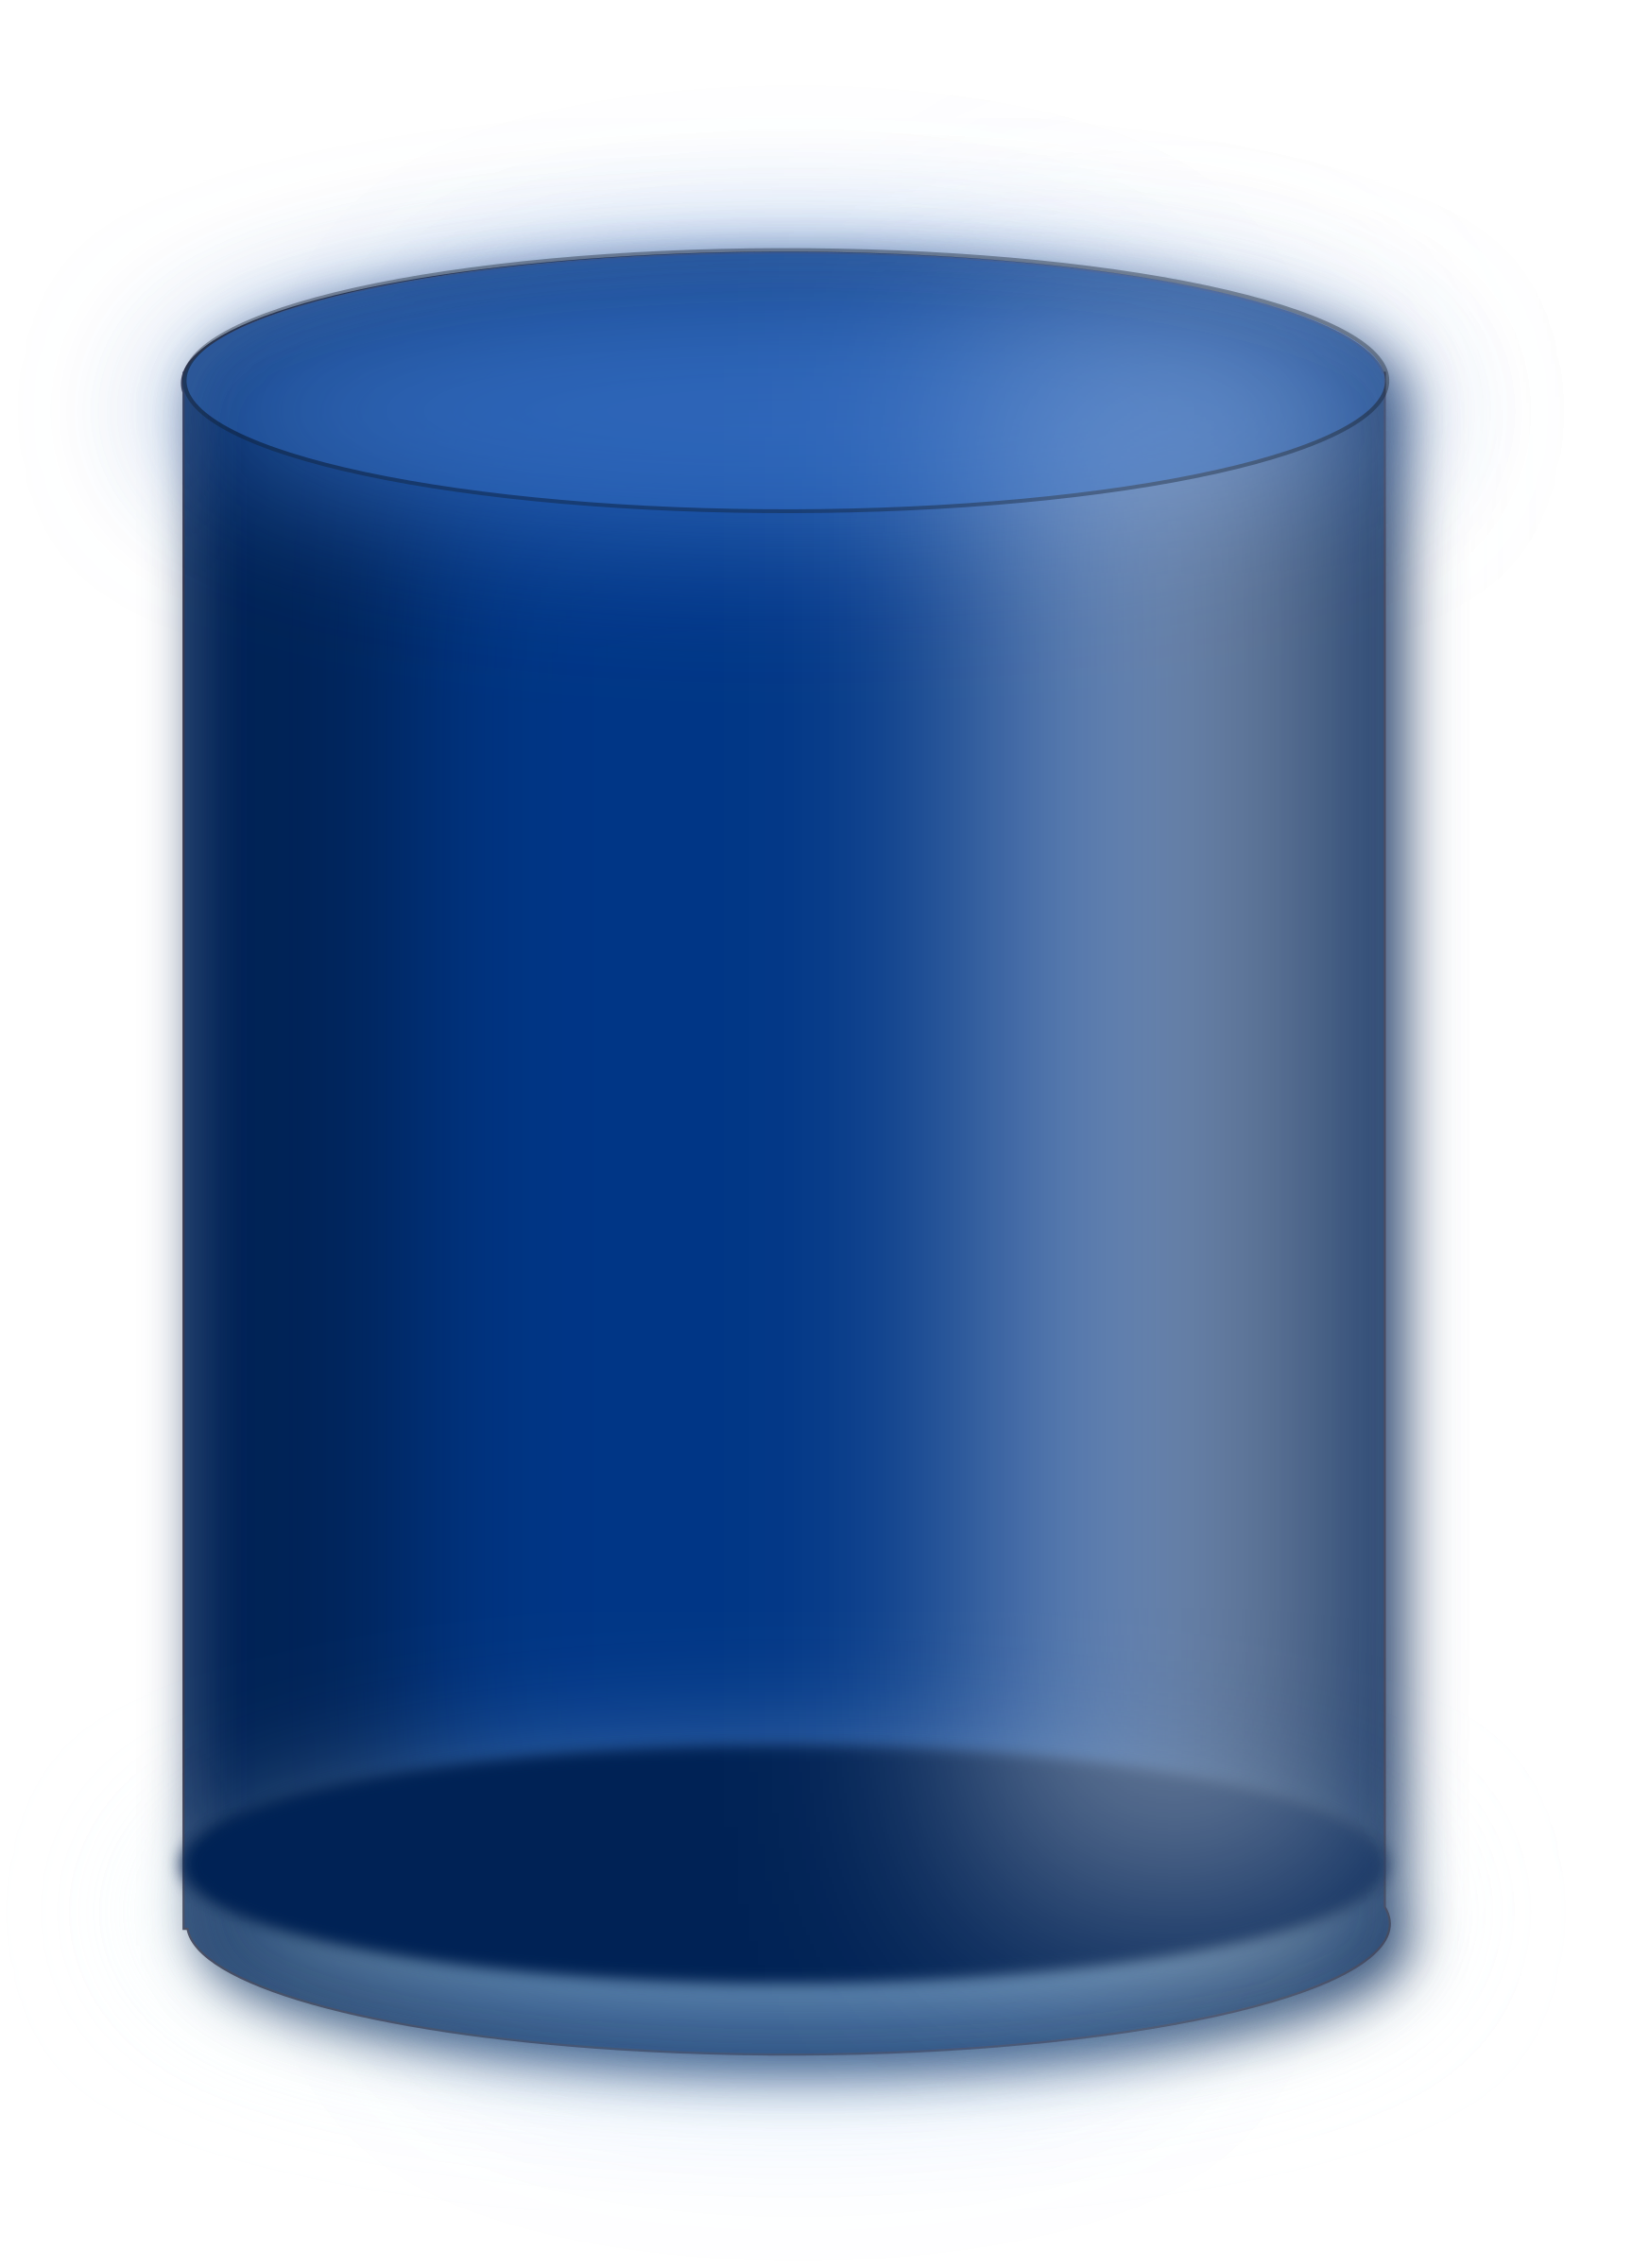 Blue cylinder by gblas.ivan